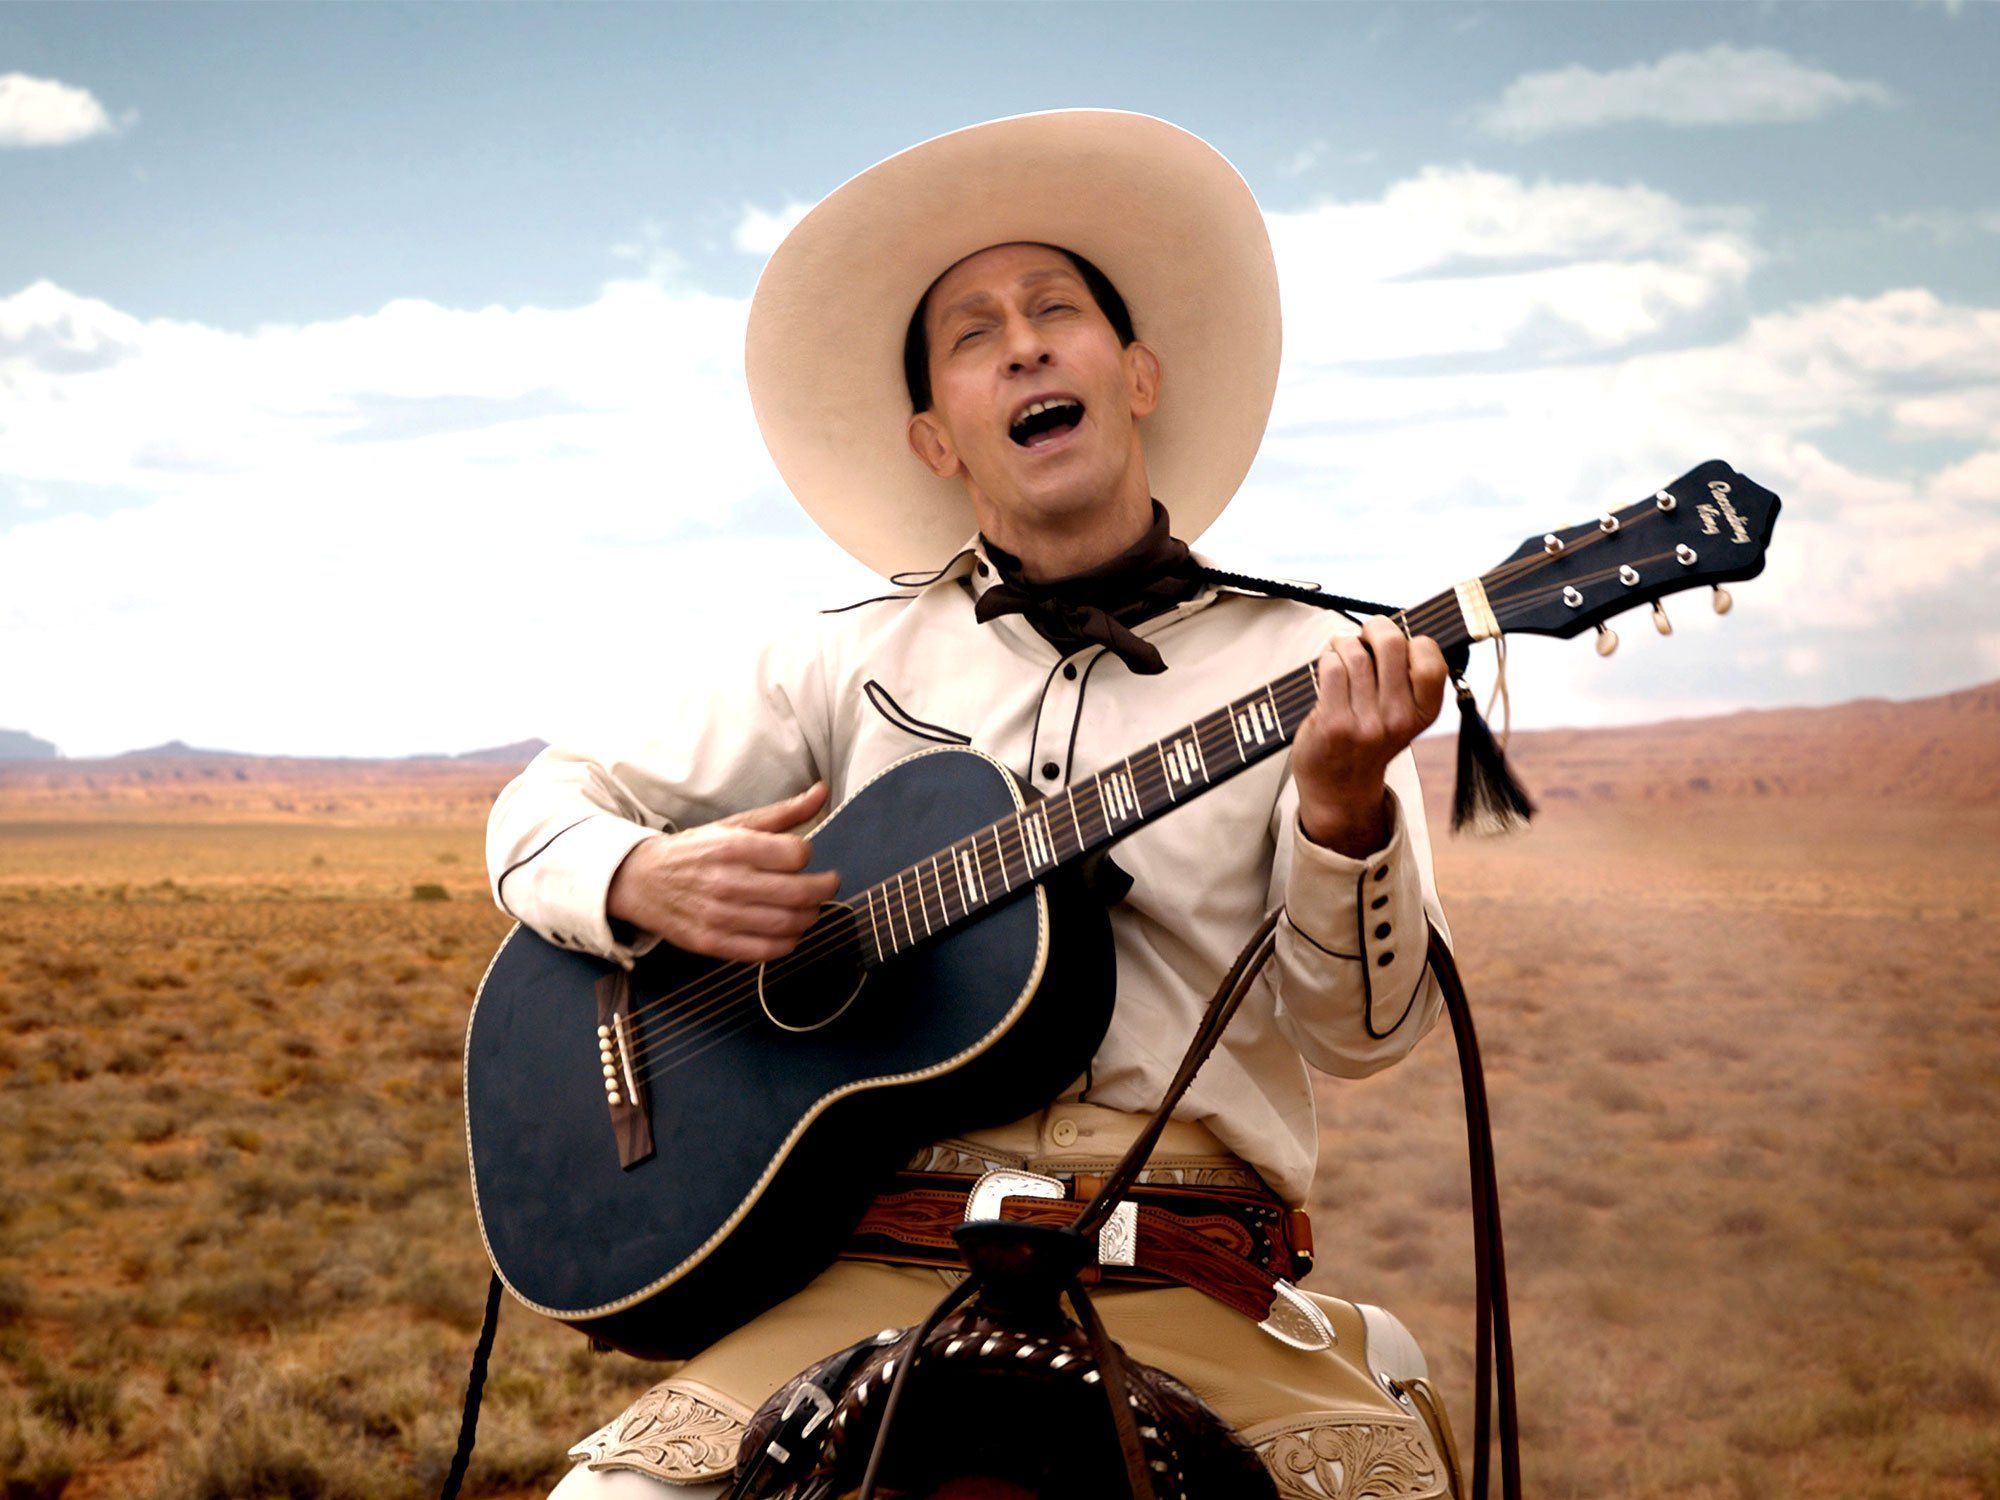 The Ballad Of Buster Scruggs Comedy Movies On Netflix Good Comedy Movies Comedy Movies